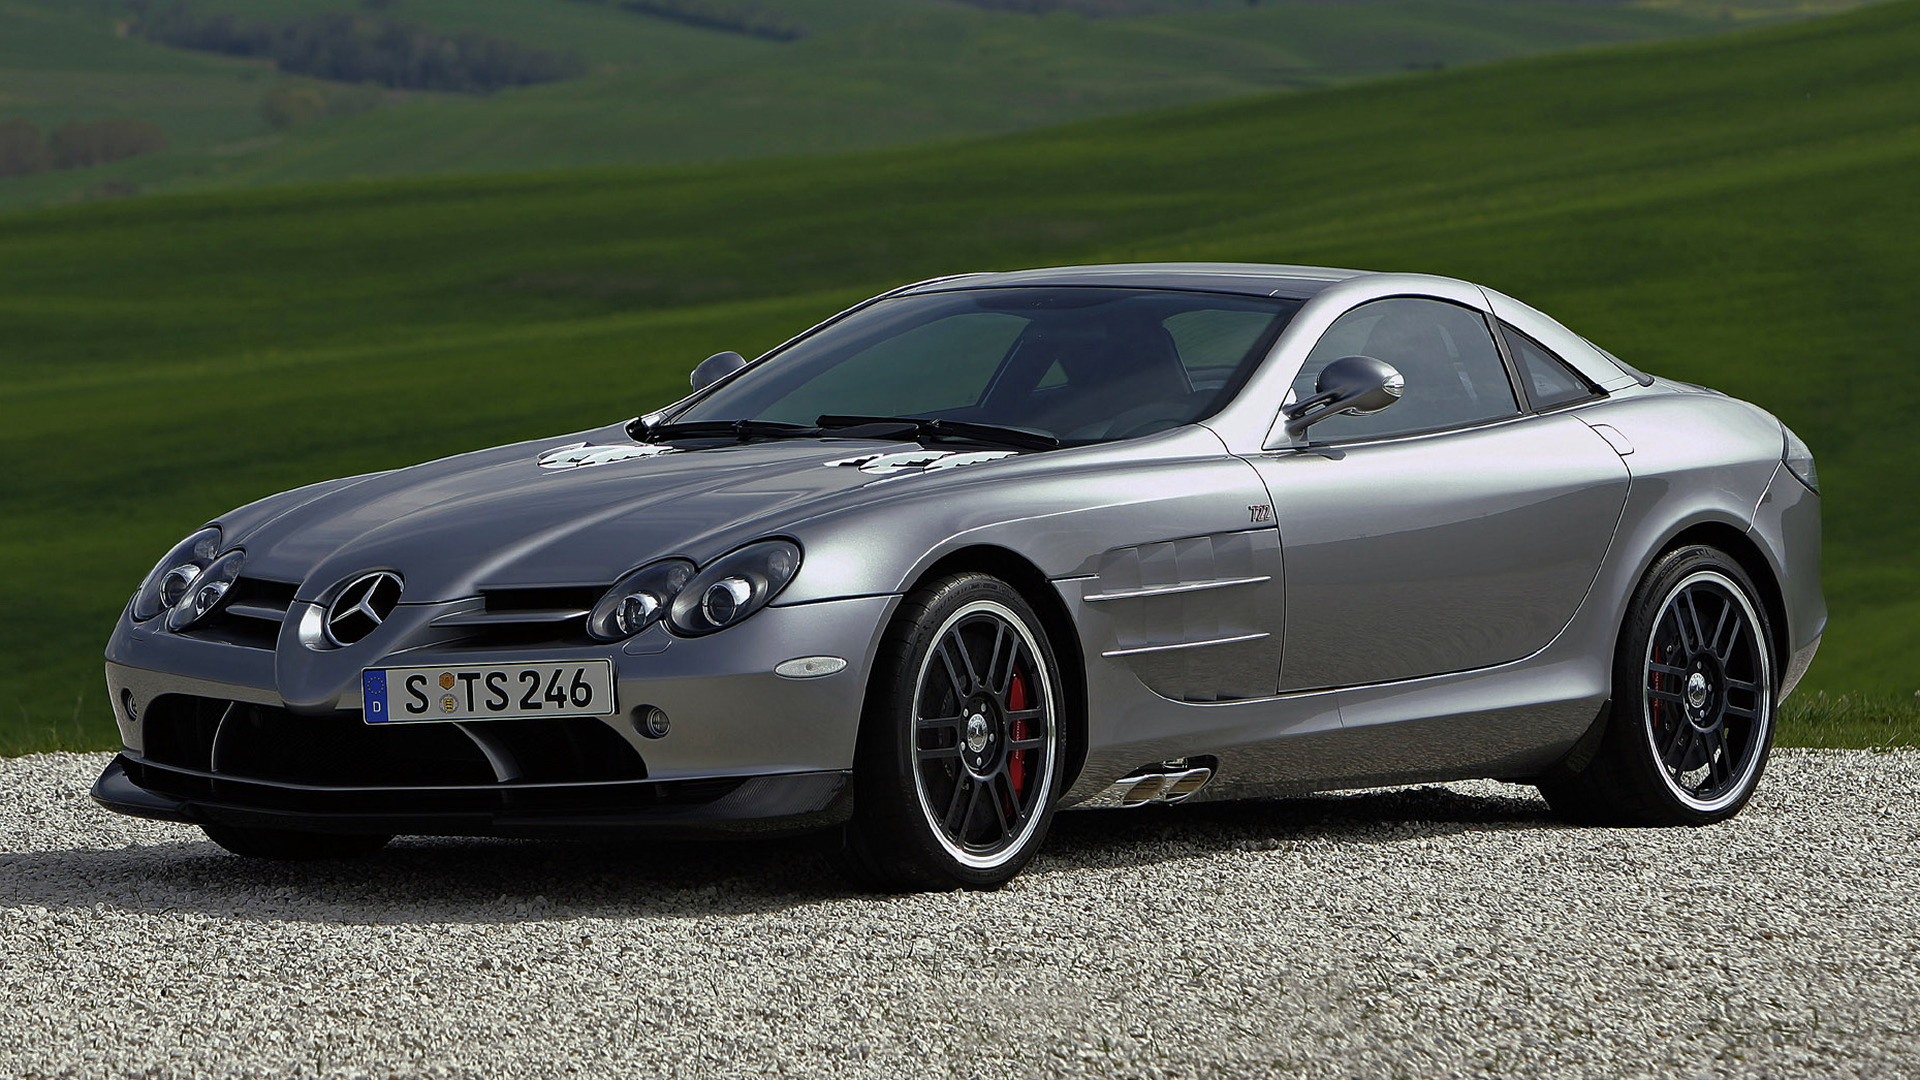 mercedes benz slr mclaren wallpapers images photos. Black Bedroom Furniture Sets. Home Design Ideas